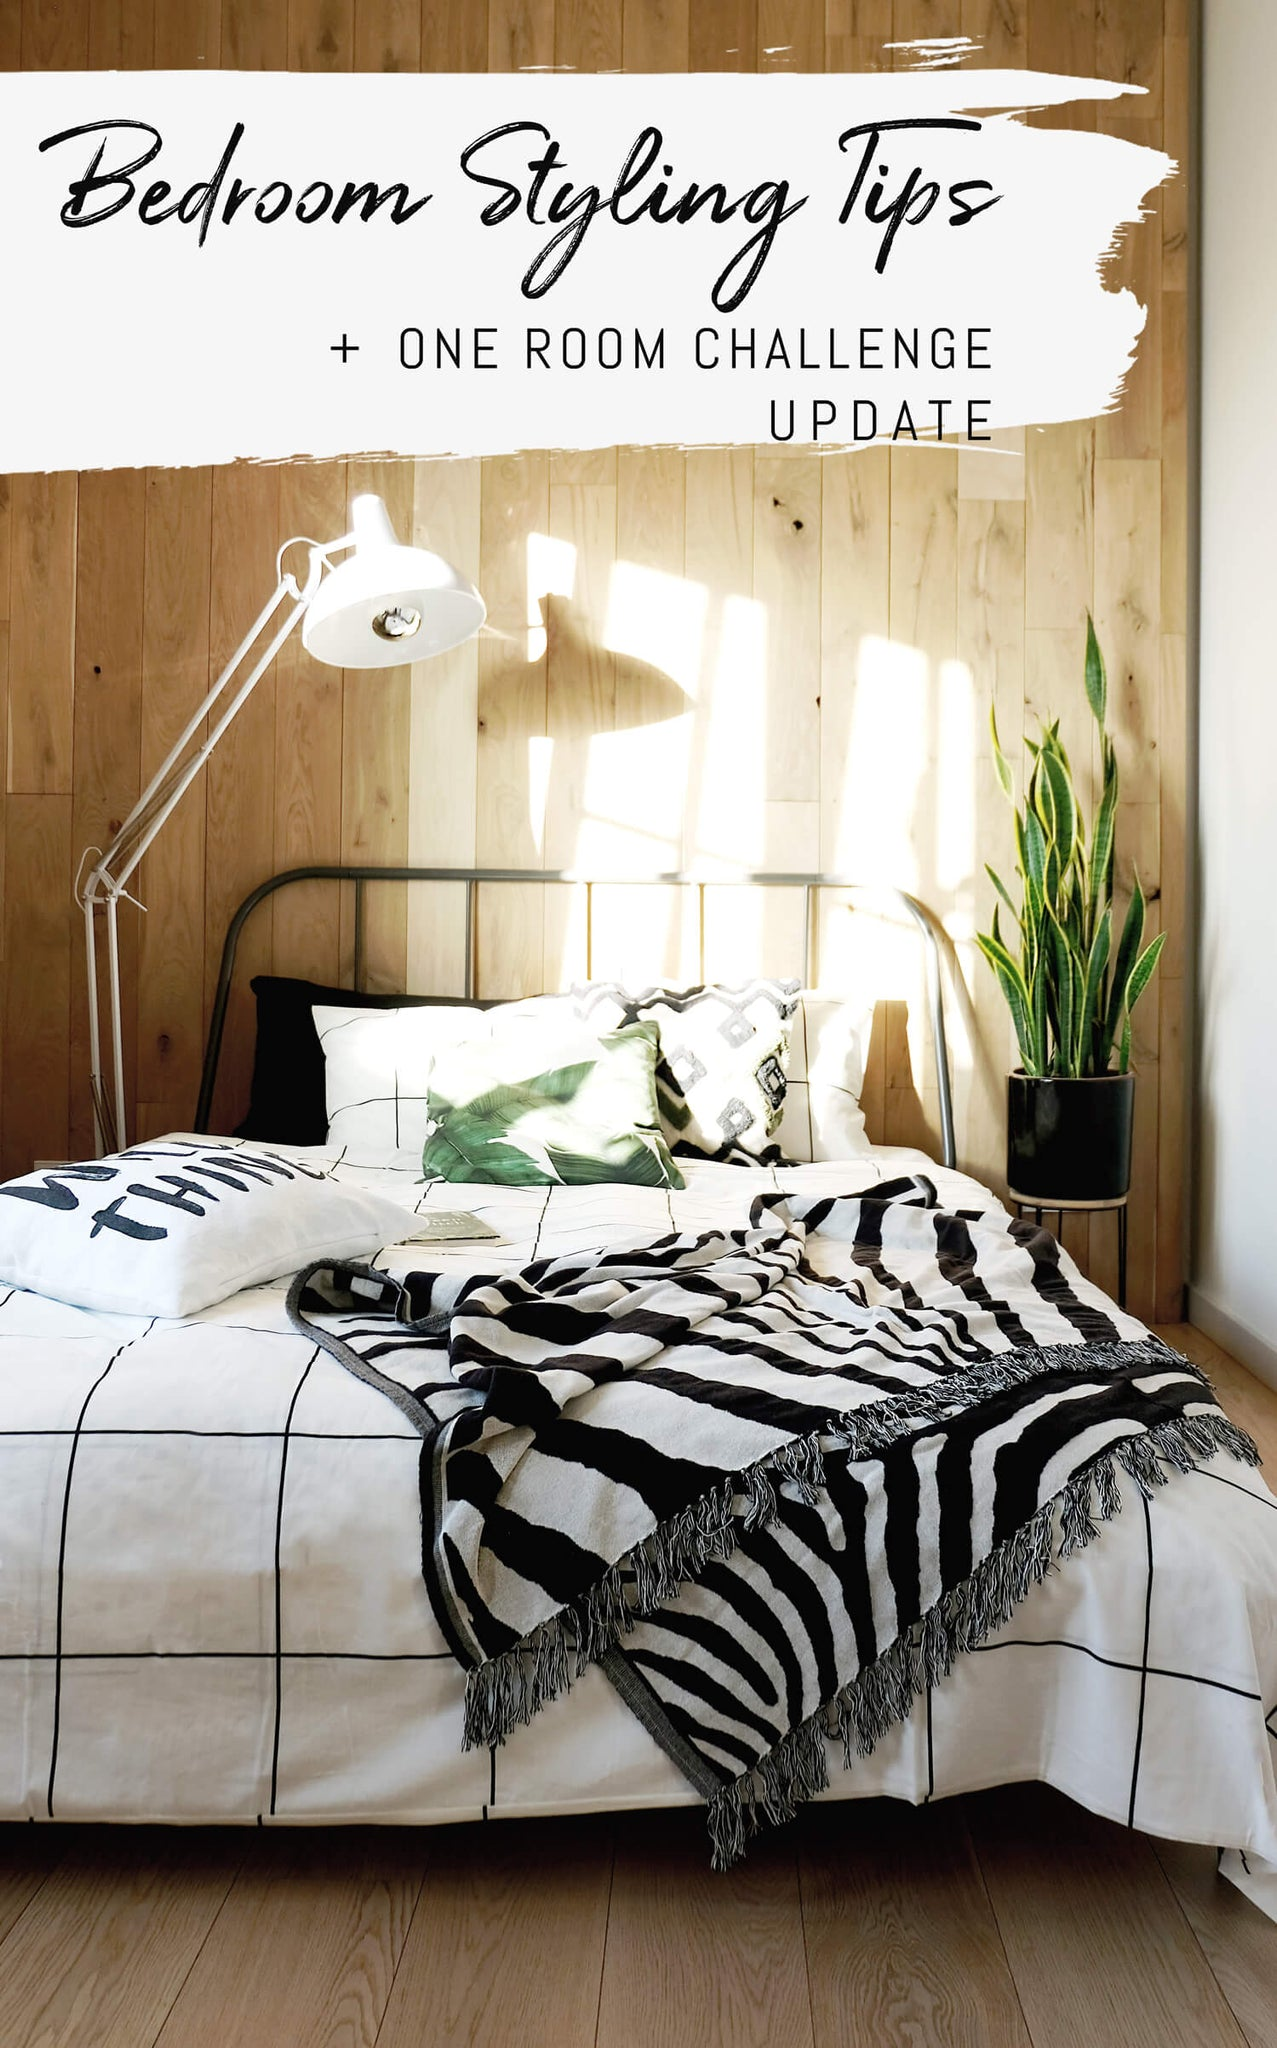 One Room Challenge 2019, Modern bohemian bedroom styling tips